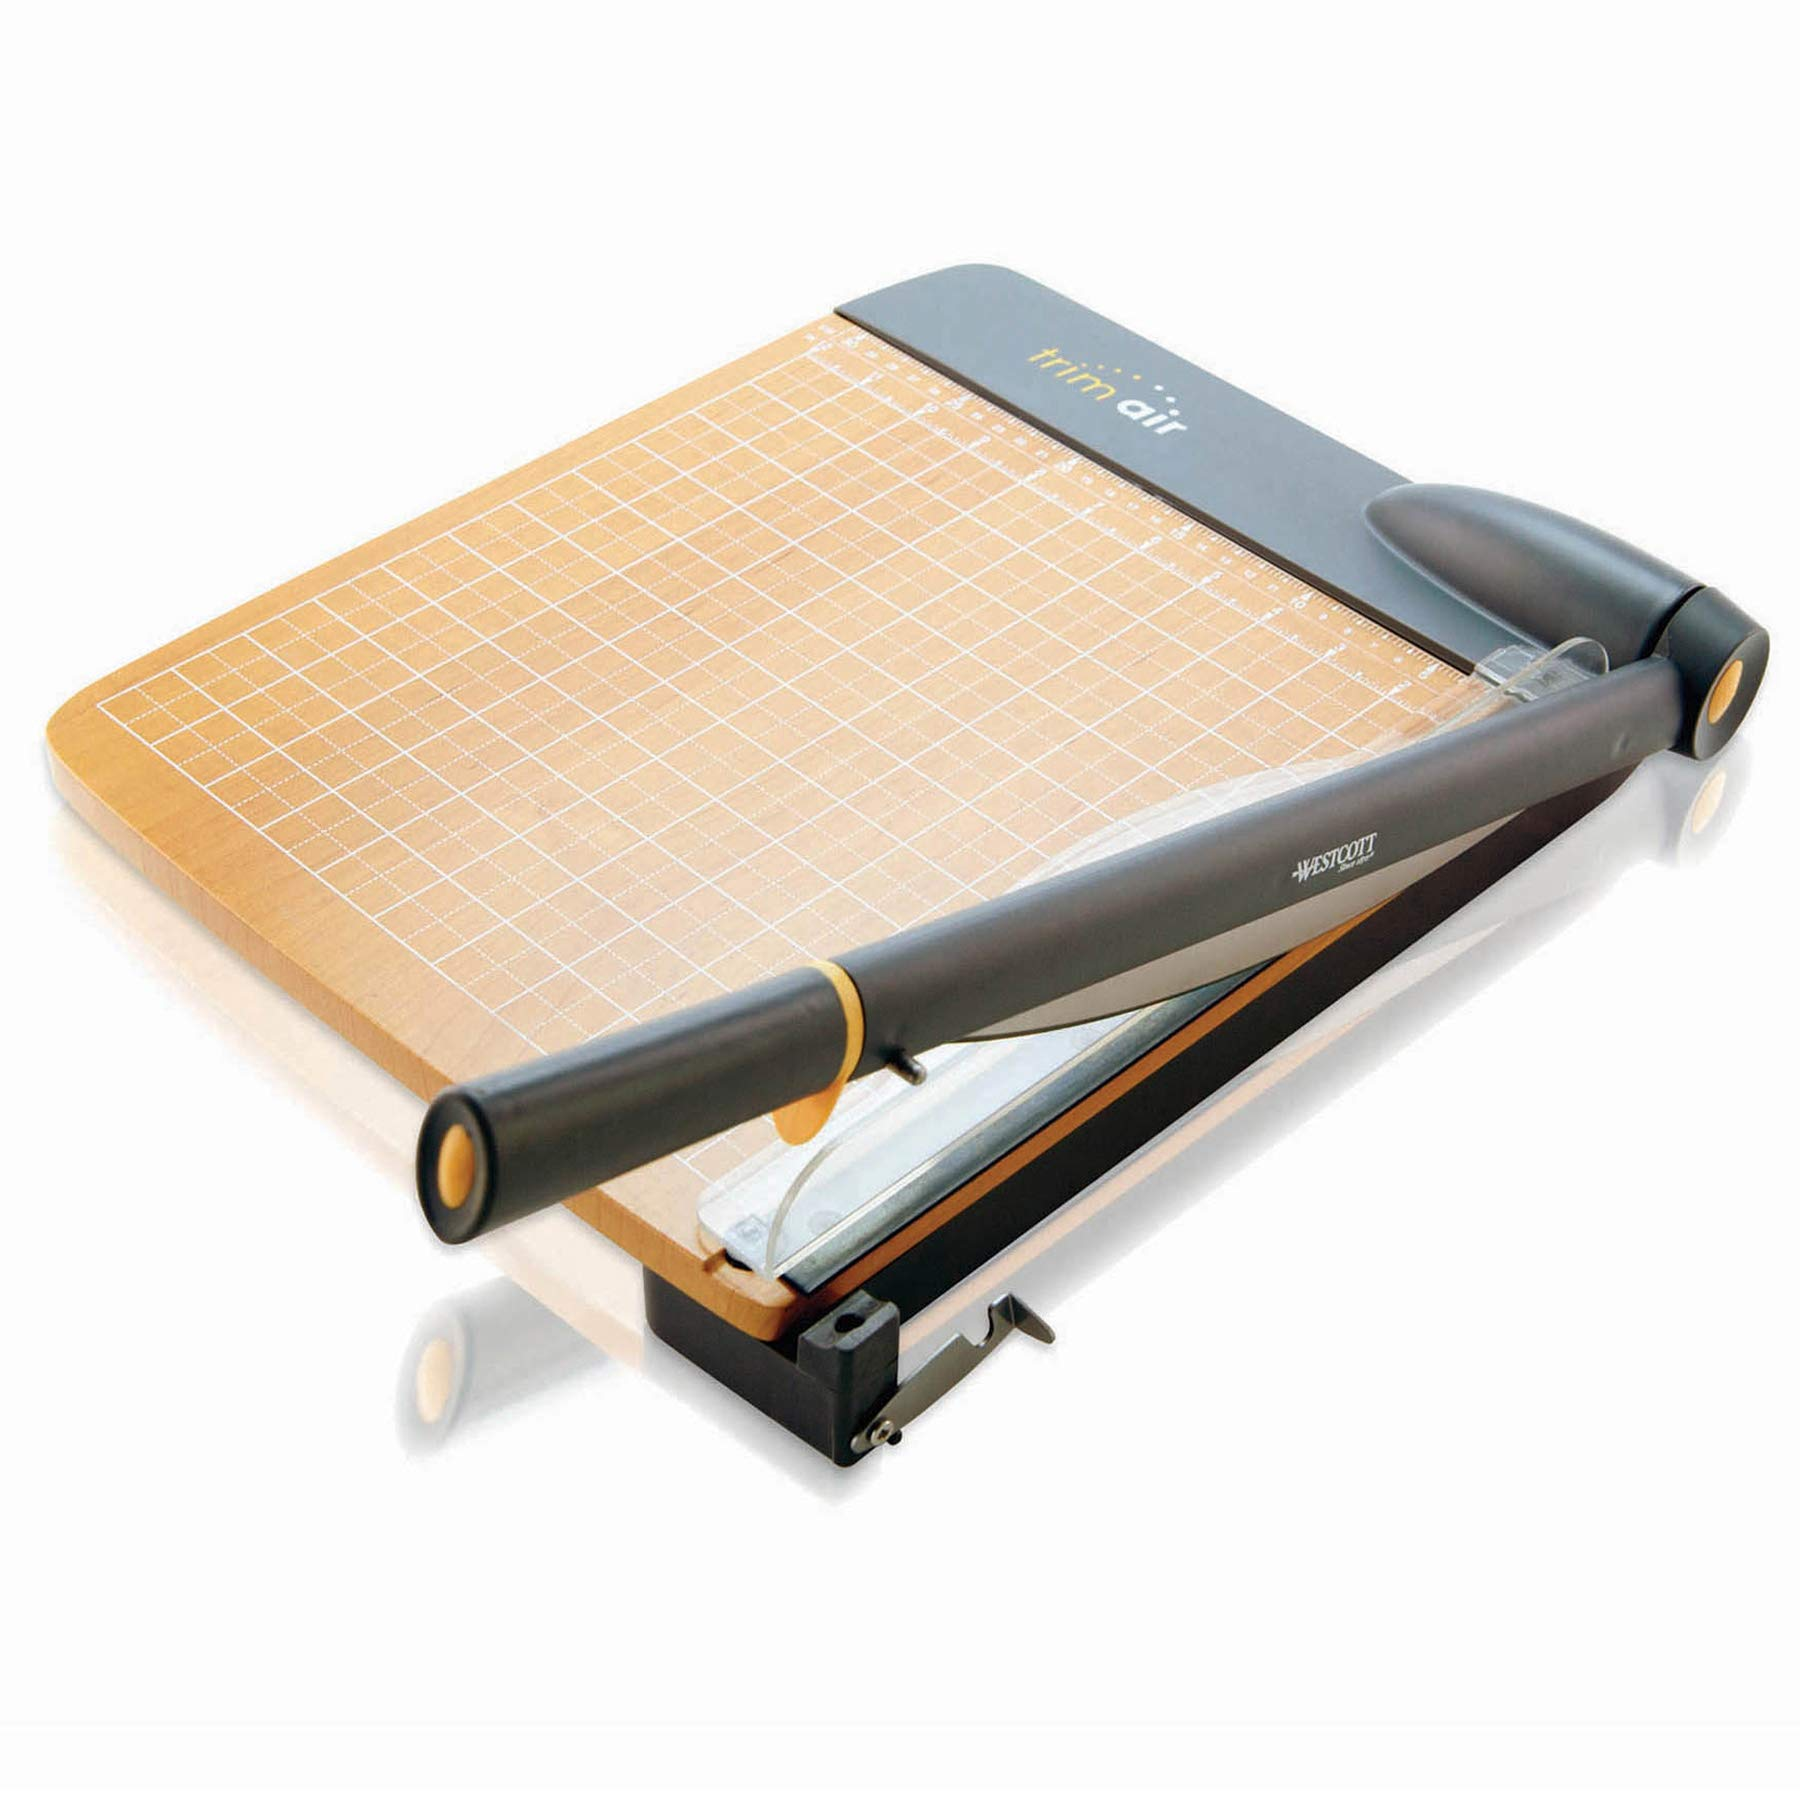 Westcott 15-Inch Trimair Titanium Wood Guillotine Paper Trimmer with Anti-Microbial Protection